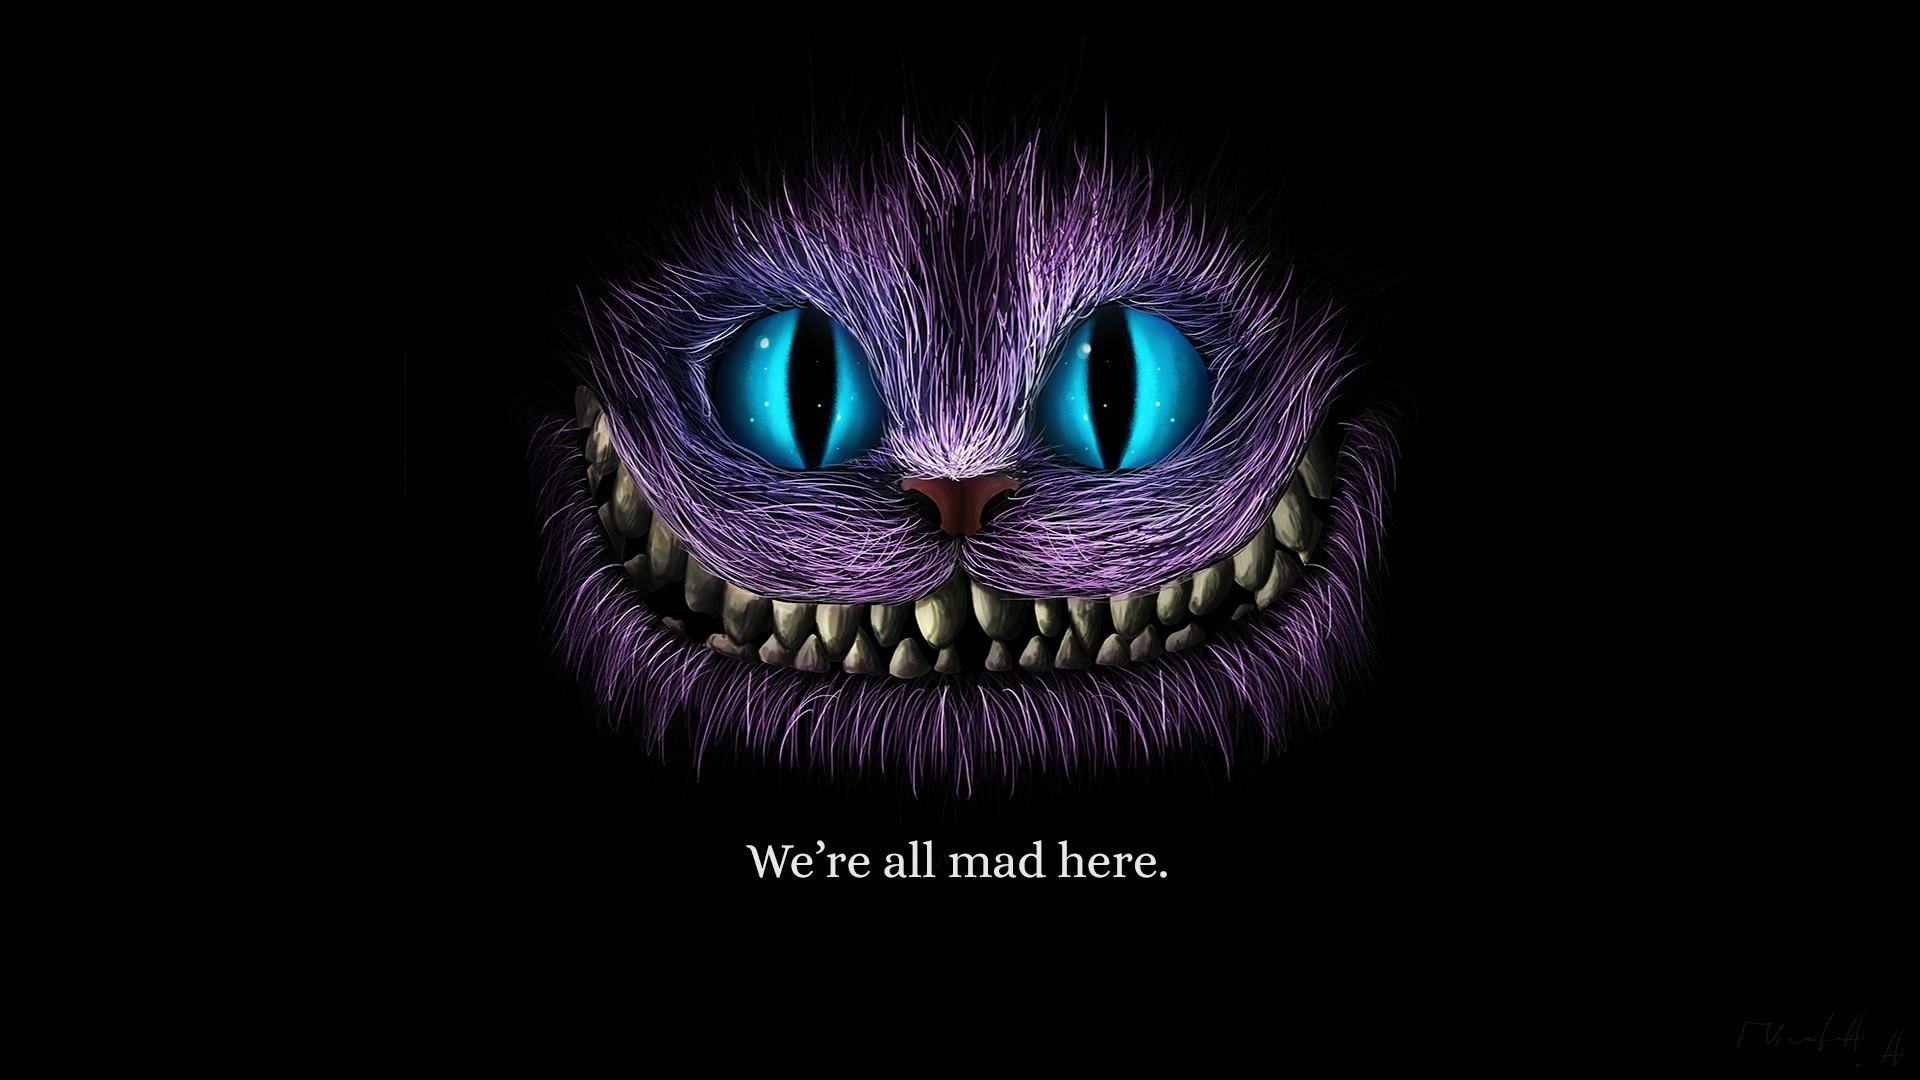 Cheshire Cat Wallpaper 1 Download Free Cool Full HD Wallpapers For